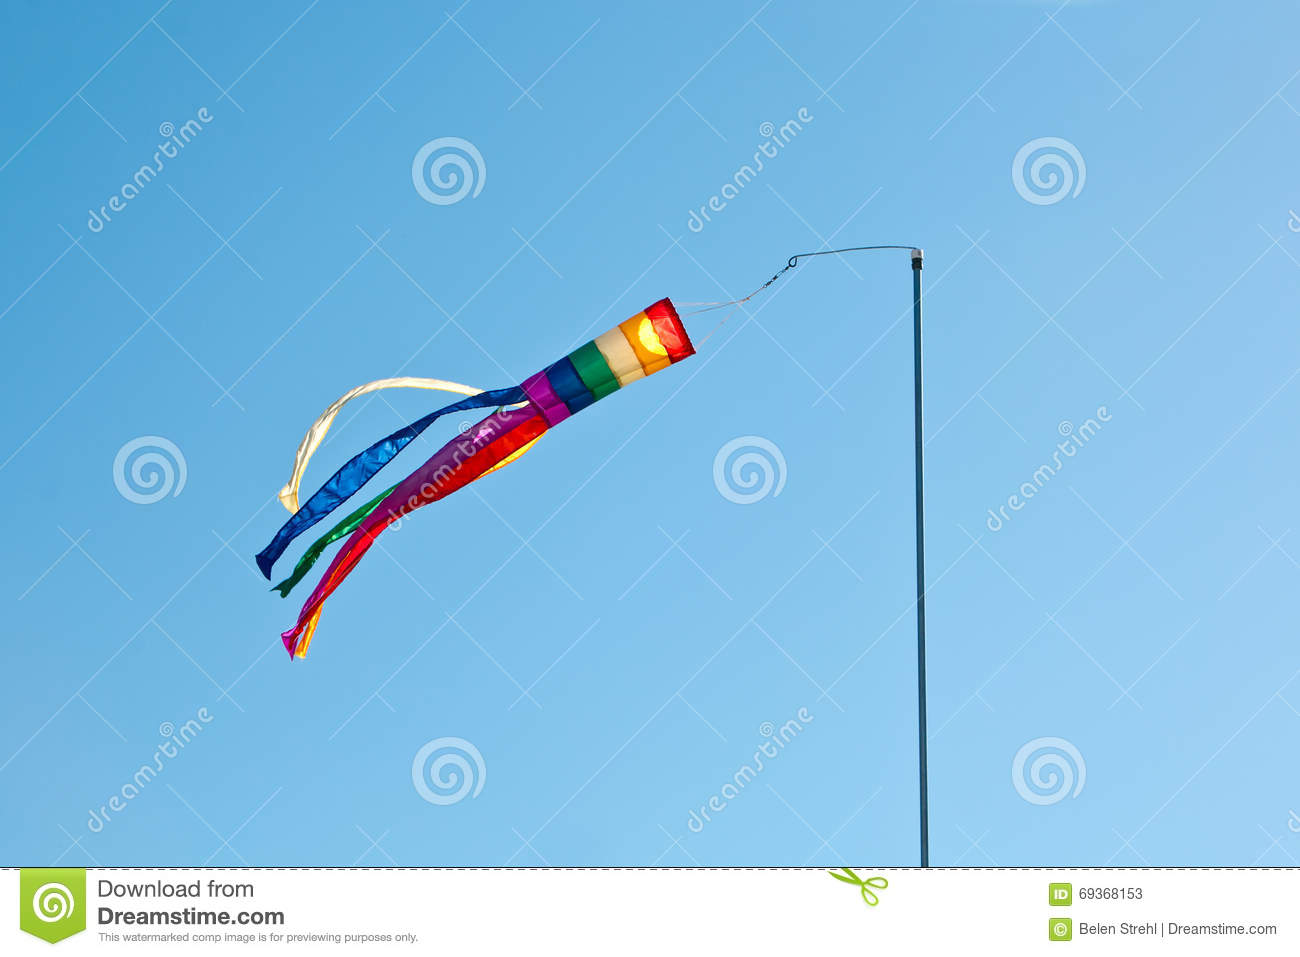 Download Rainbow Colors Wind Spinner Stock Image - Image of stripes, kite: 69368153